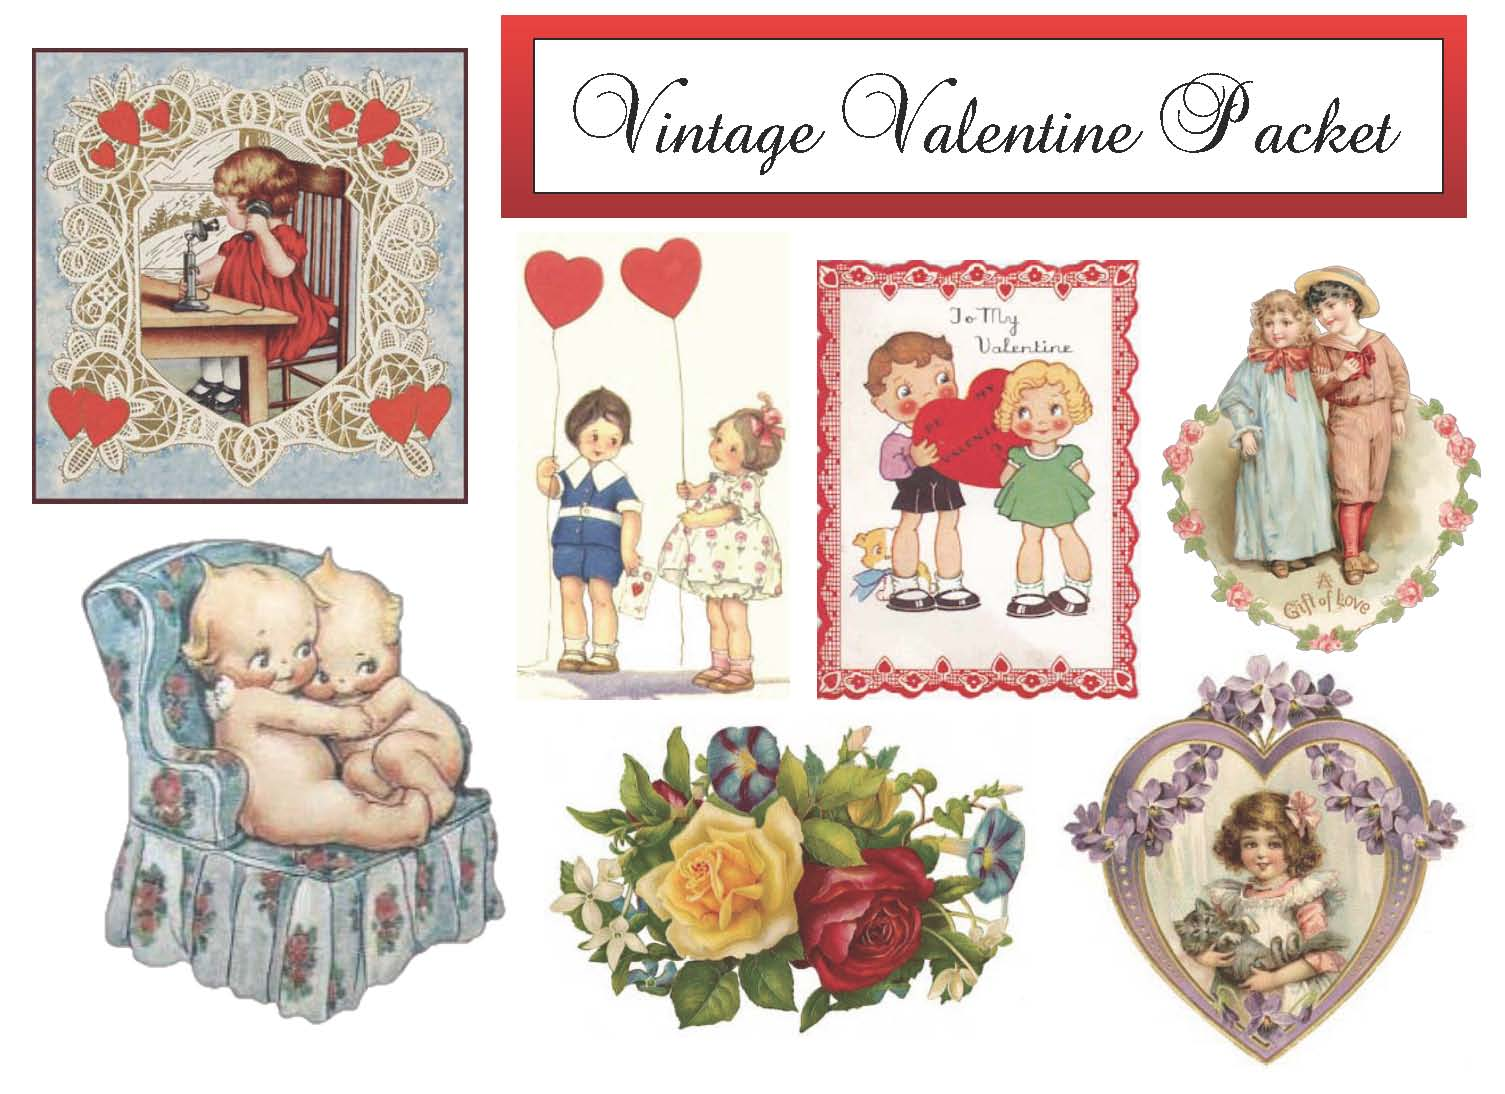 homemade valentines, mustache valentines, Christian valentines, valentines day activities, valentines day crafts, valentines for kids, vintage valentines, valentine crafts, valentine writing promtps, free vintage valentines, free victorian valentines, writing prompts for February,